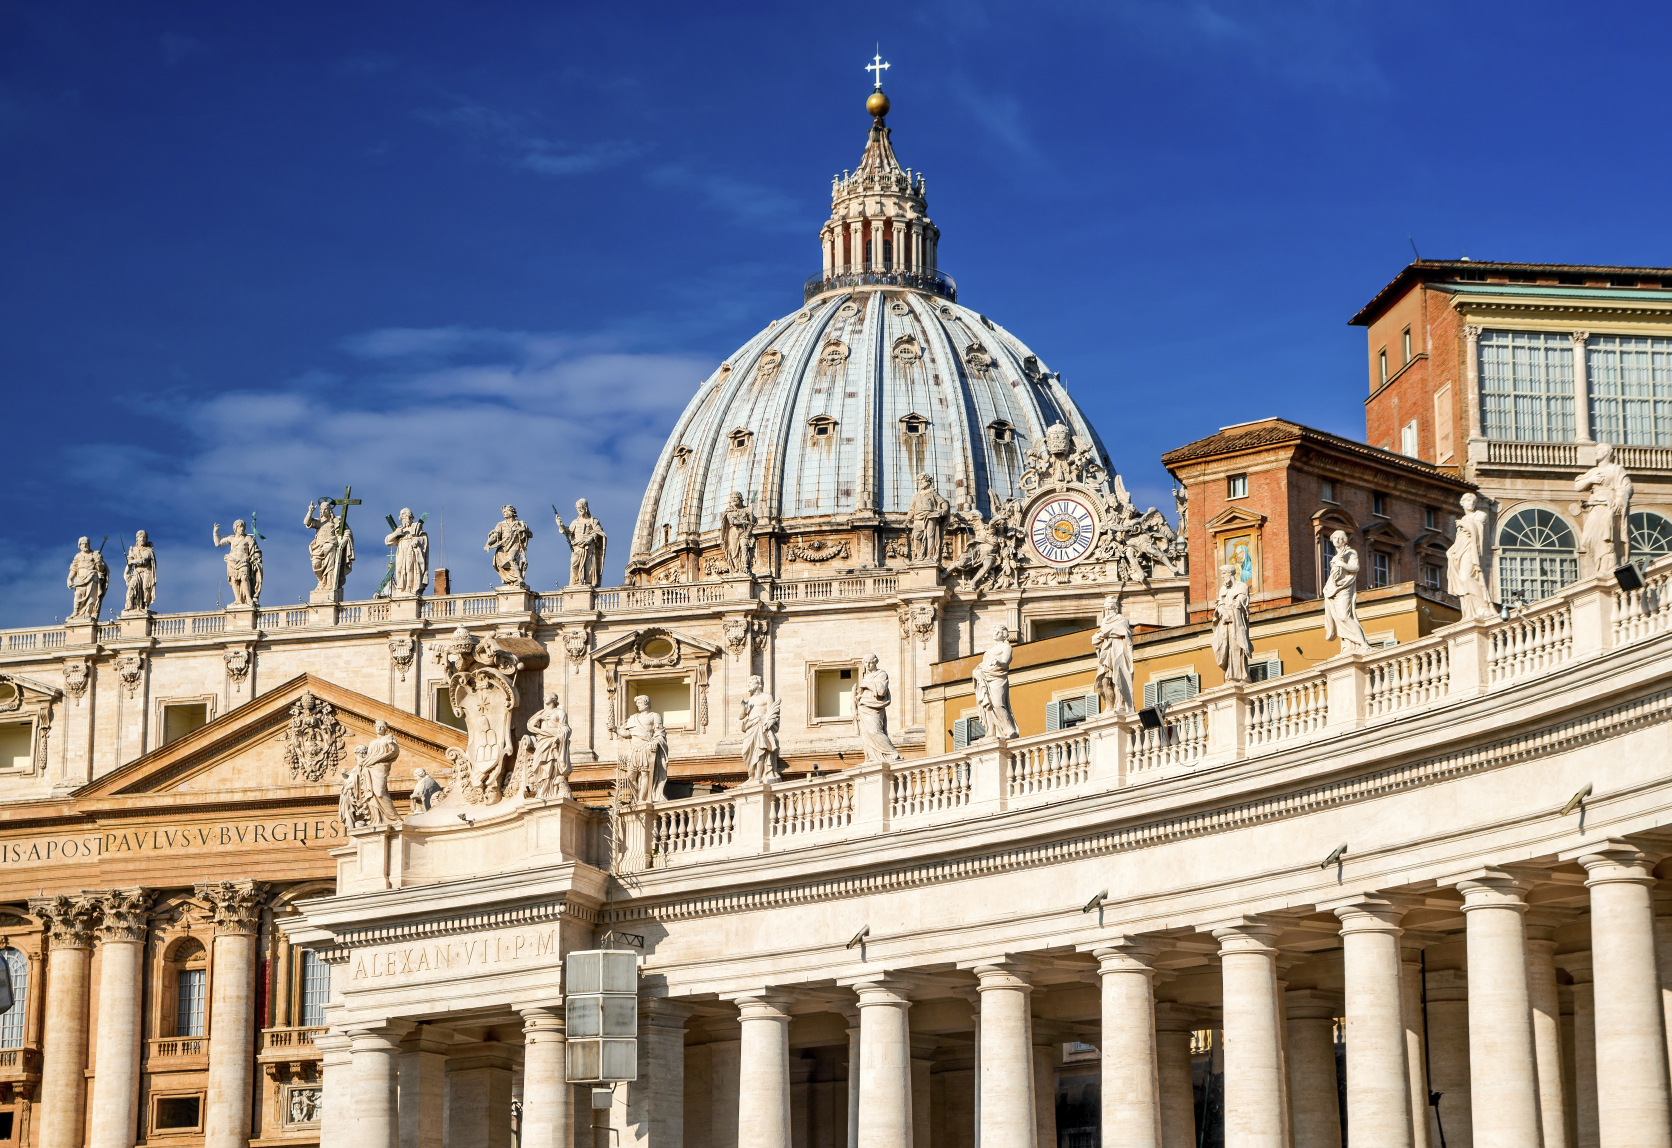 Vatican to host conference on stem cells, other regenerative